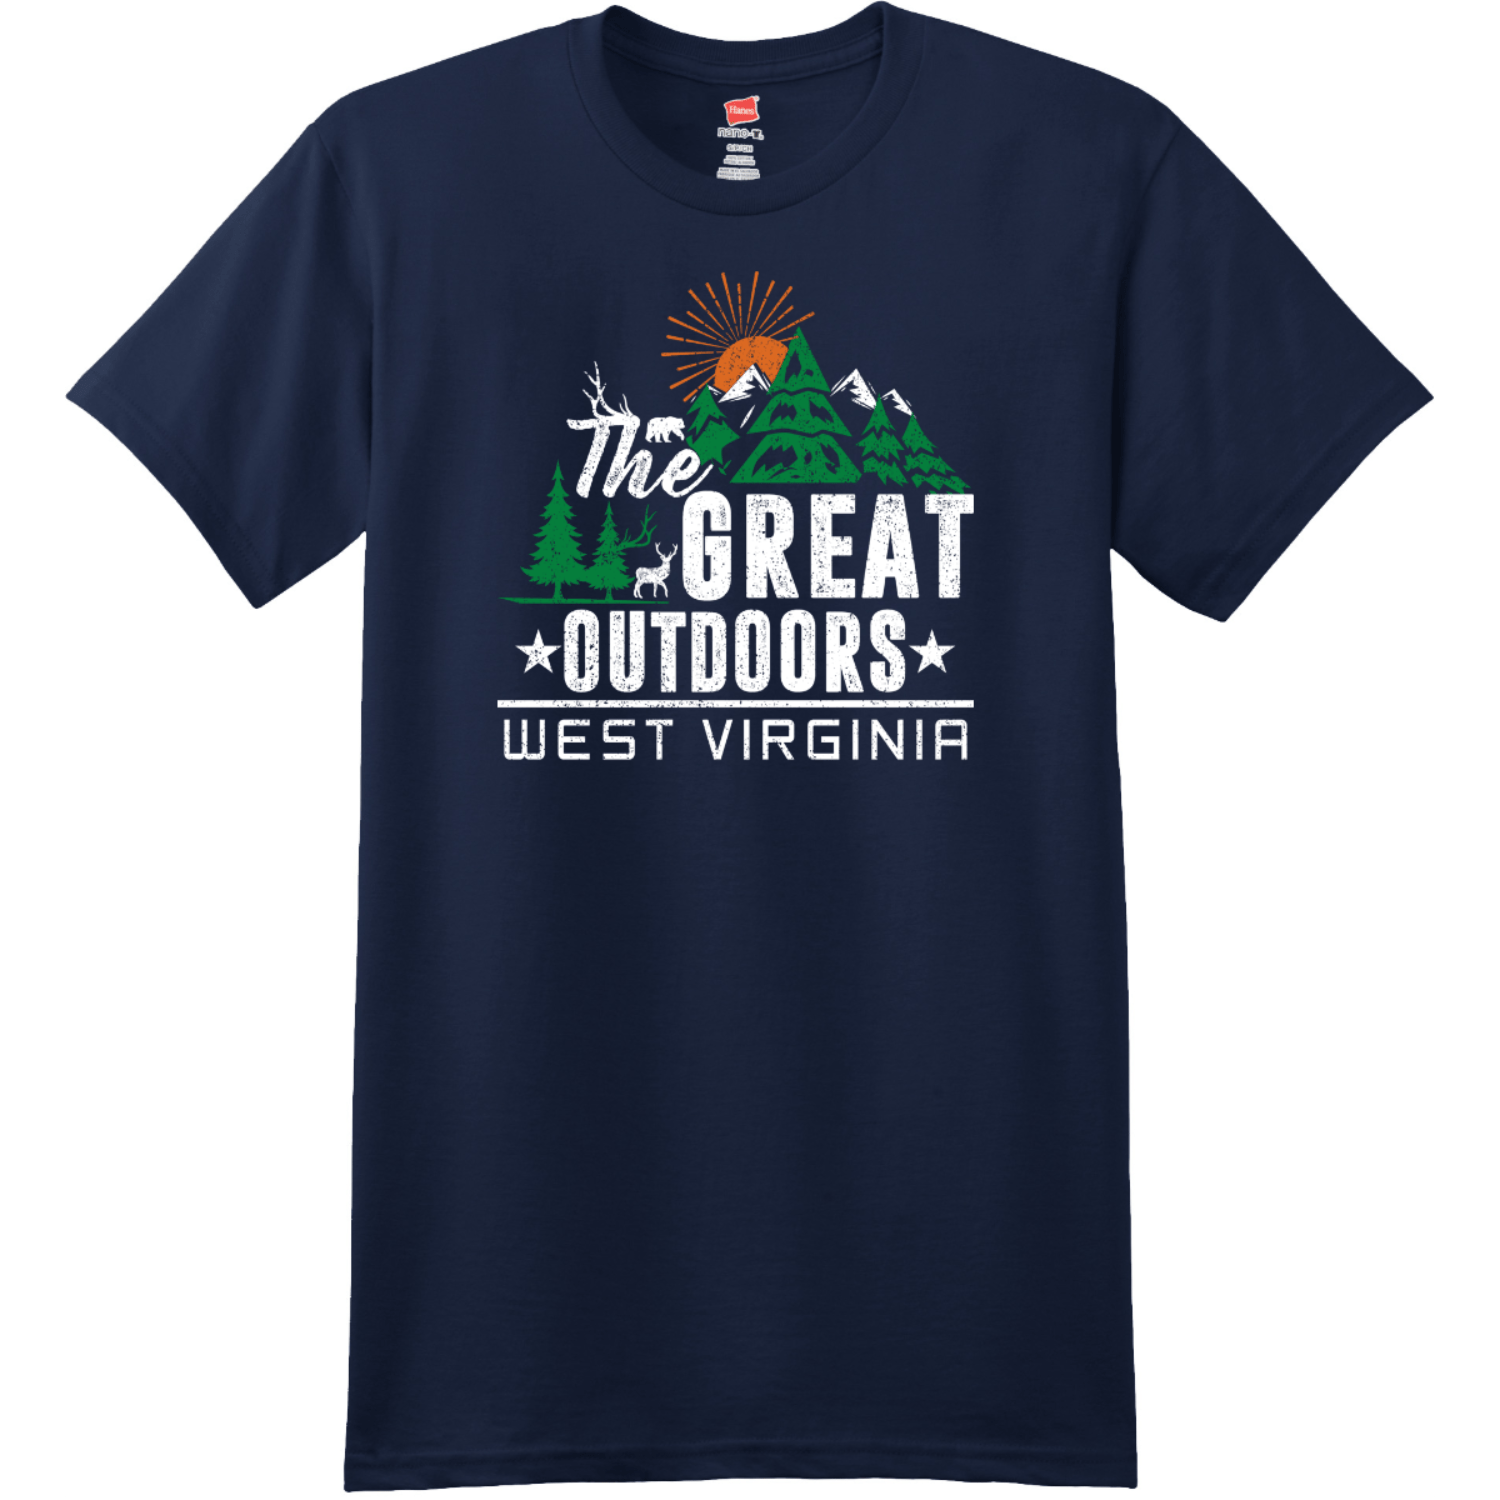 The Great Outdoors West Virginia T-Shirt Navy Hanes Nano 4980 Ringspun Cotton T Shirt